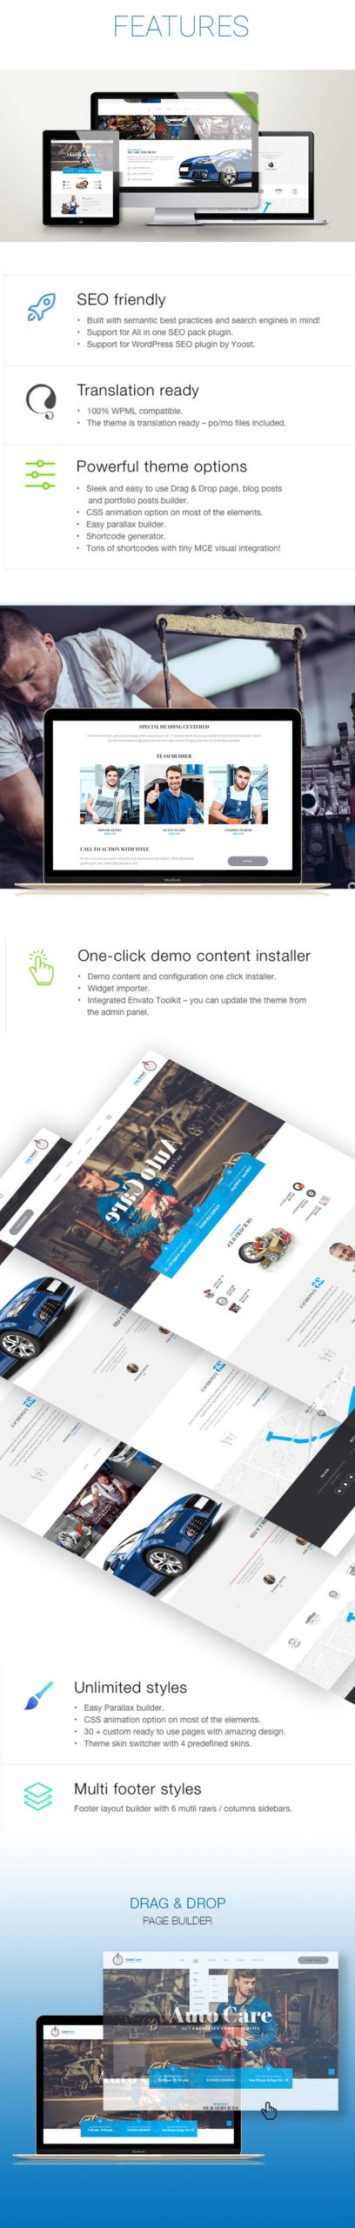 AutoCare – Auto Service WordPress Theme is an excellent fit for people who are running repair workshops, car service.